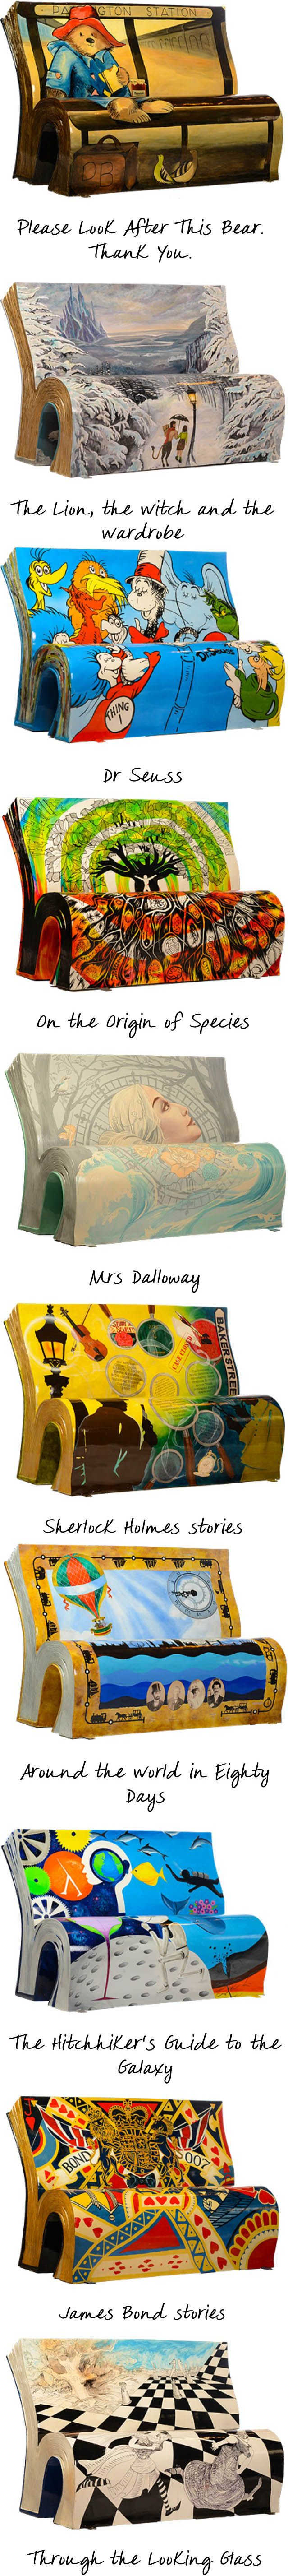 These are 10 of the 50 literary benches that the National Literary Trust and Wild in Art have put up all over London to celebrate reading. That's so cool! :D